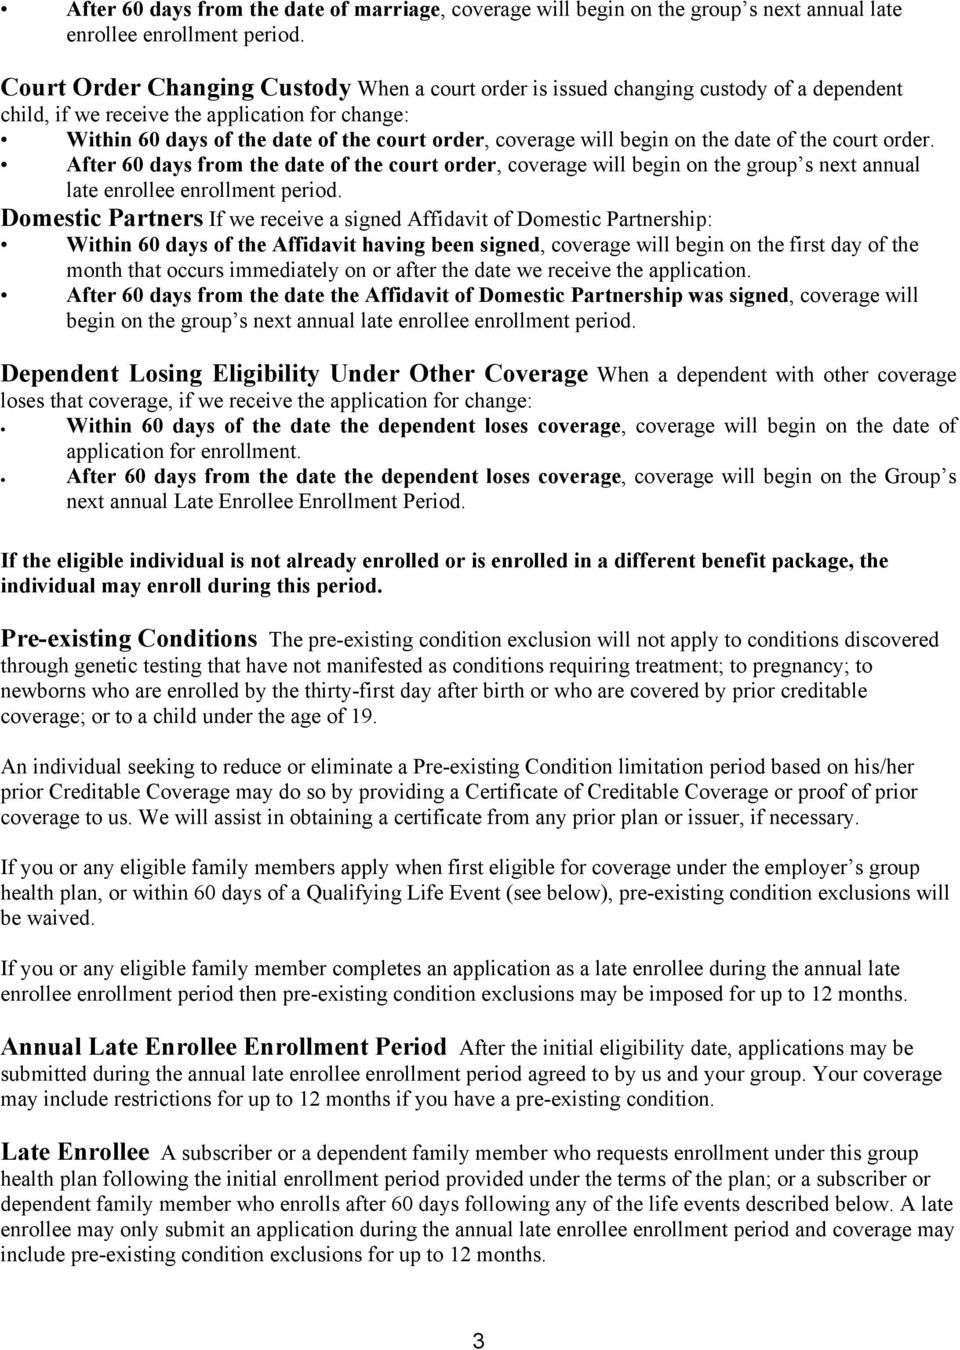 Mea Choice Plus Point Of Service Plan Certificate Of Coverage Pdf